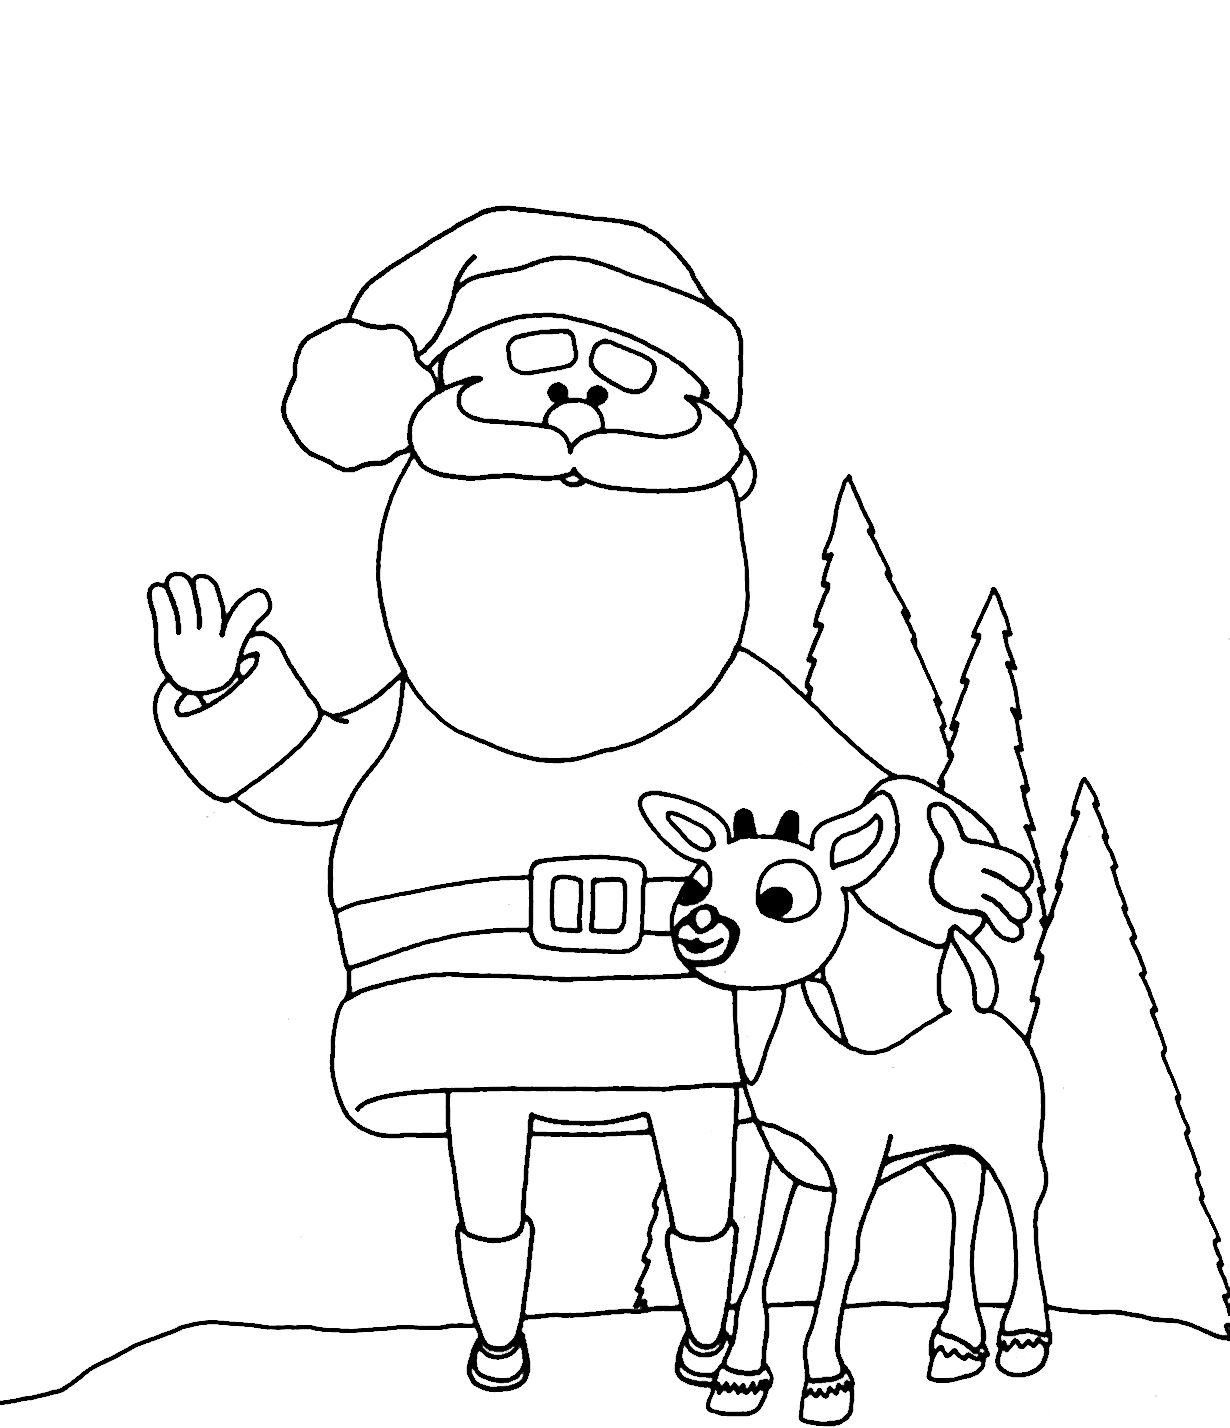 Santa Coloring Pages For Toddlers With Free Printable Claus Kids